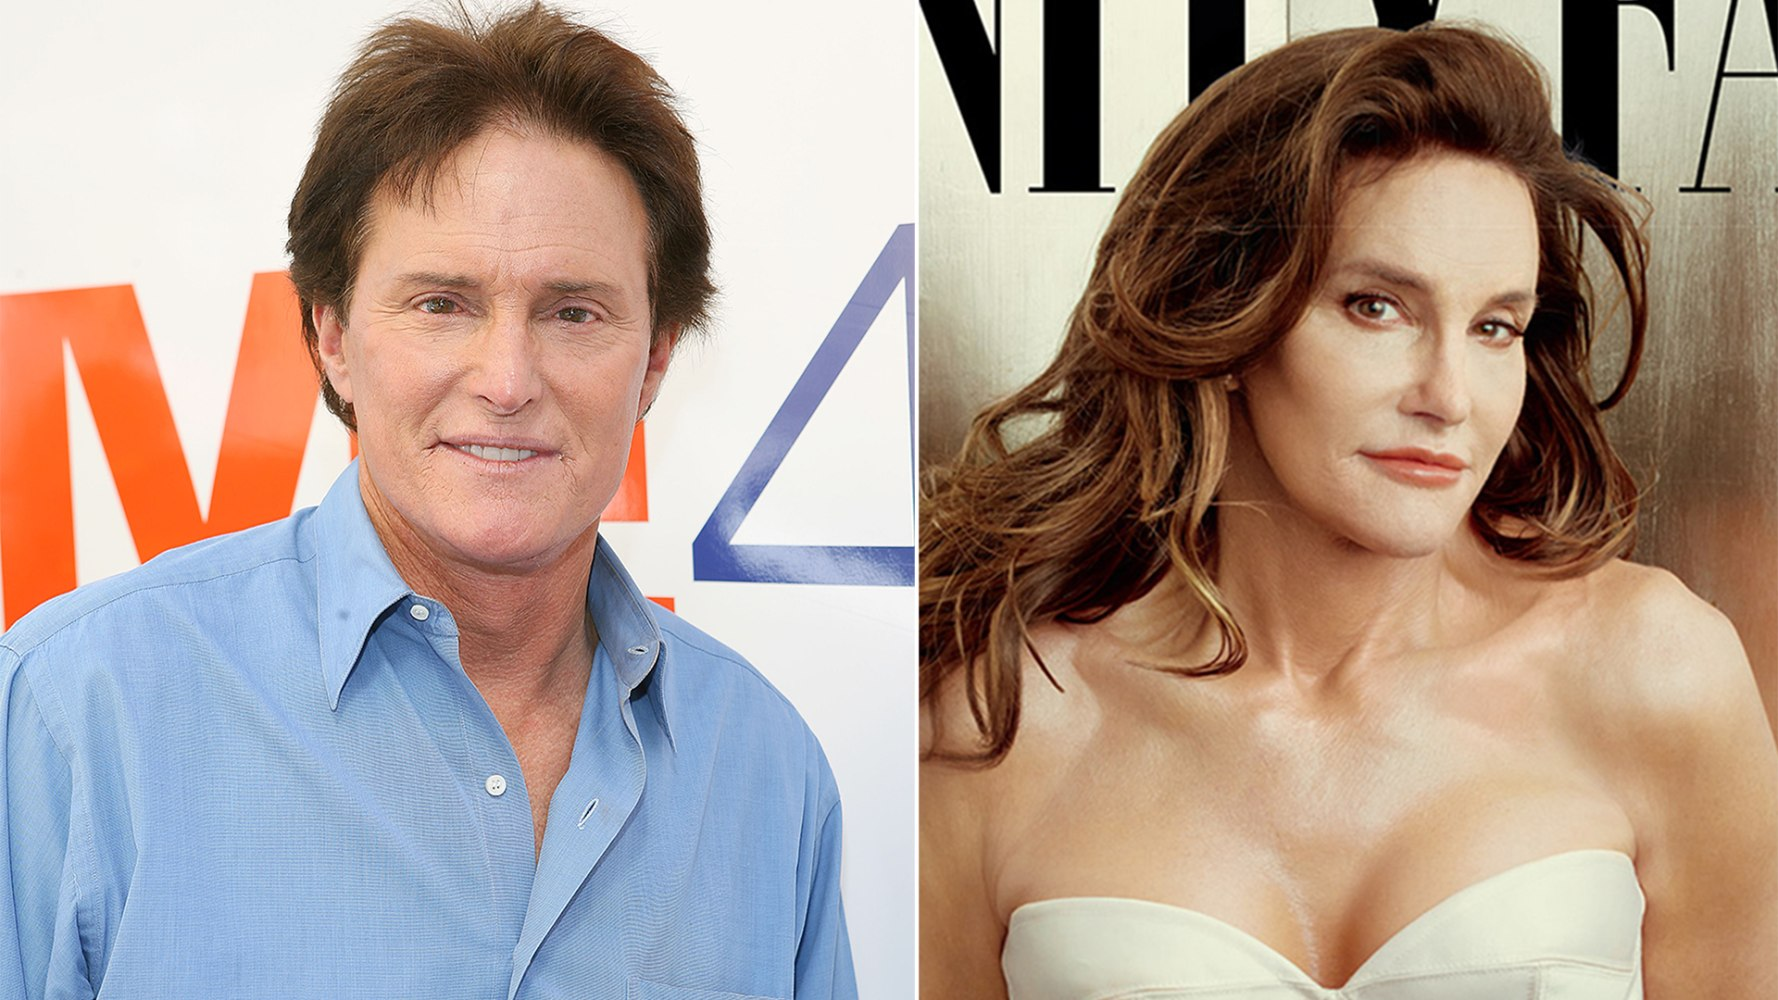 Guy predicted bruce jenner was a woman in 2009 video alternative